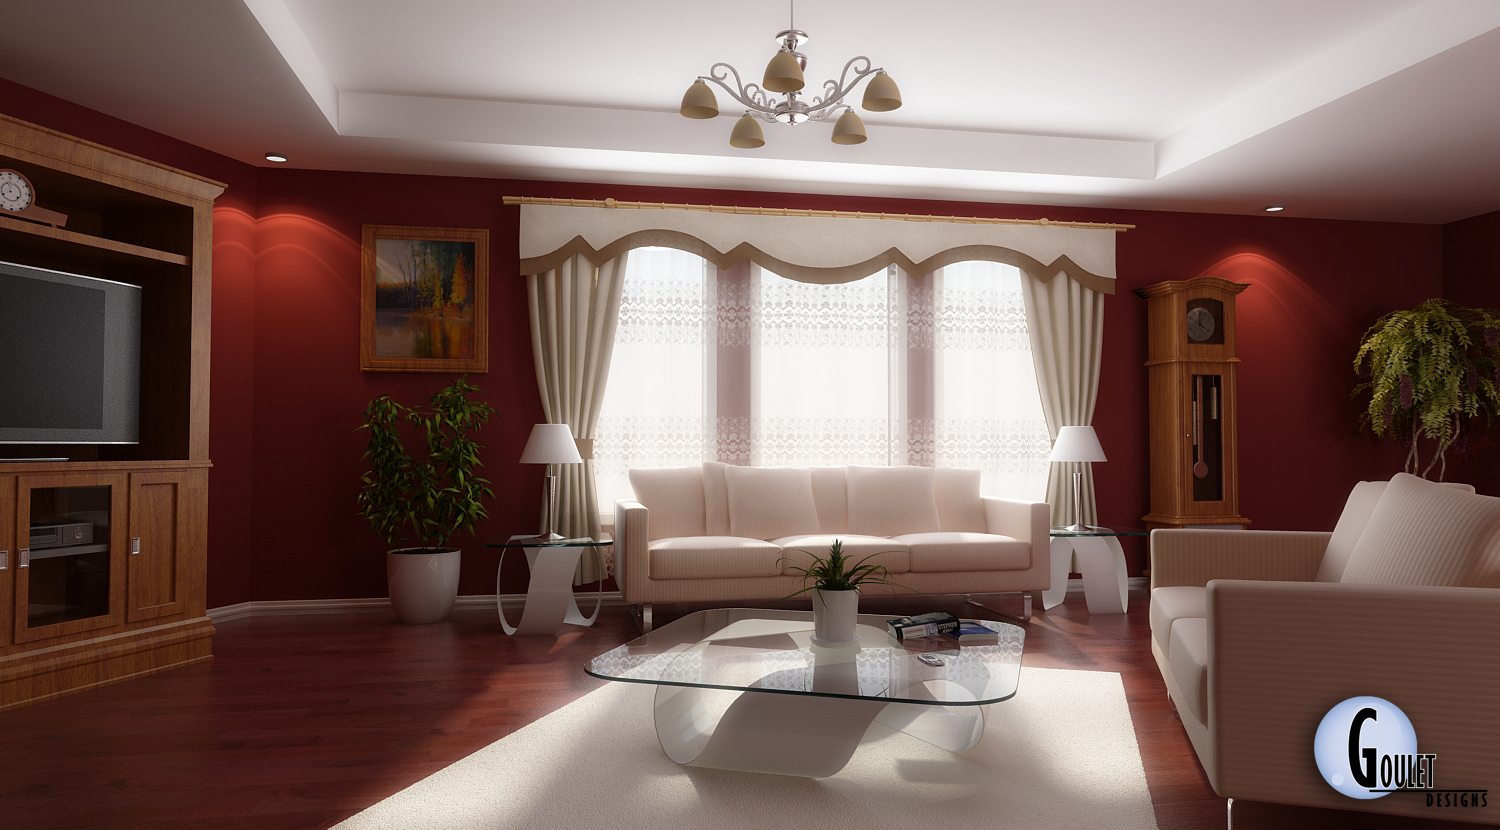 Living room decorating home designer for Decoration ideas living room